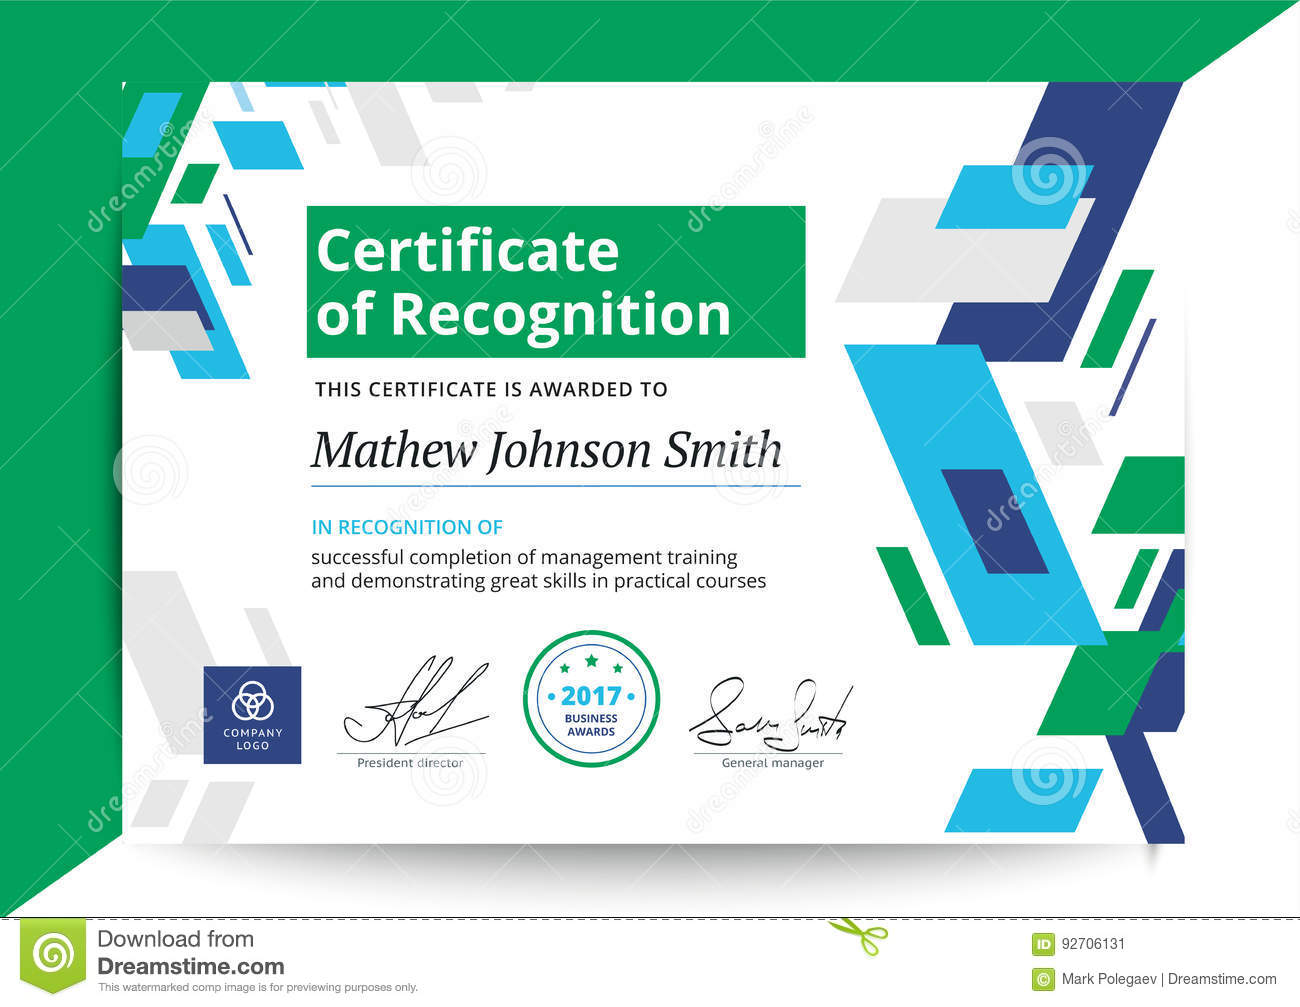 Certificate Of Recognition Template | Certificate Of Recognition Template In Modern Design Business D